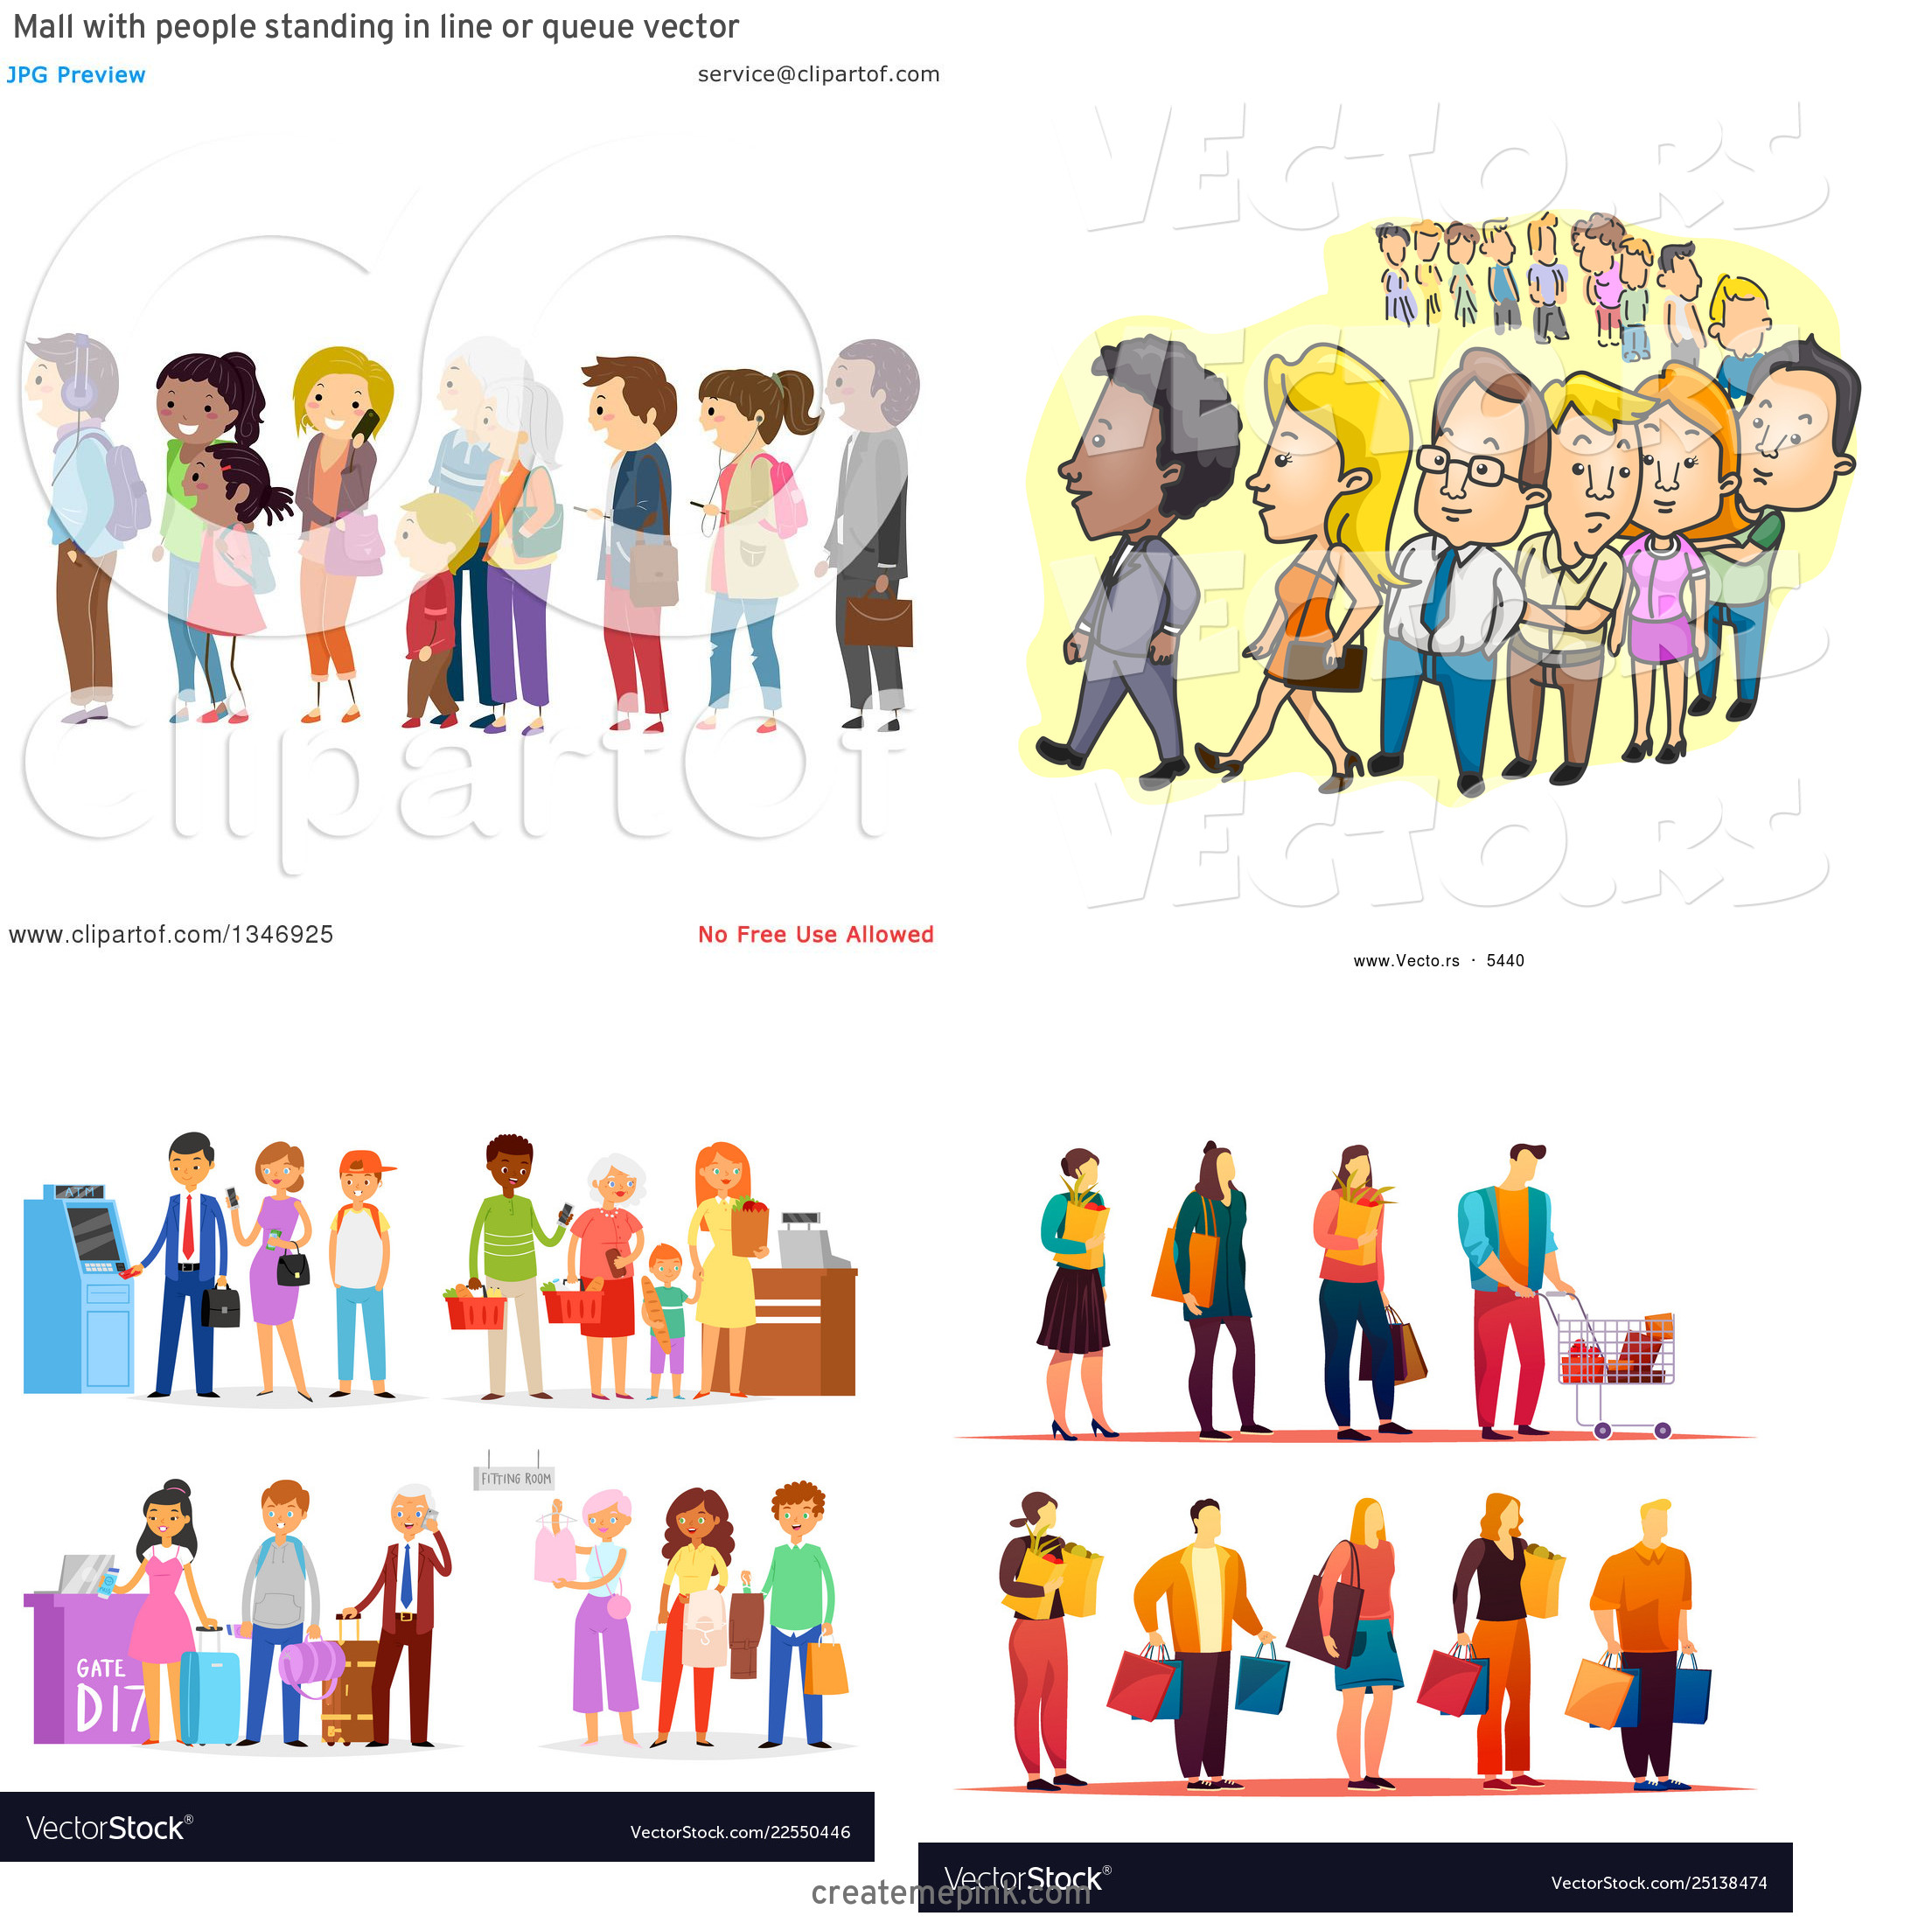 People In Line Clip Art Vector: Mall With People Standing In Line Or Queue Vector